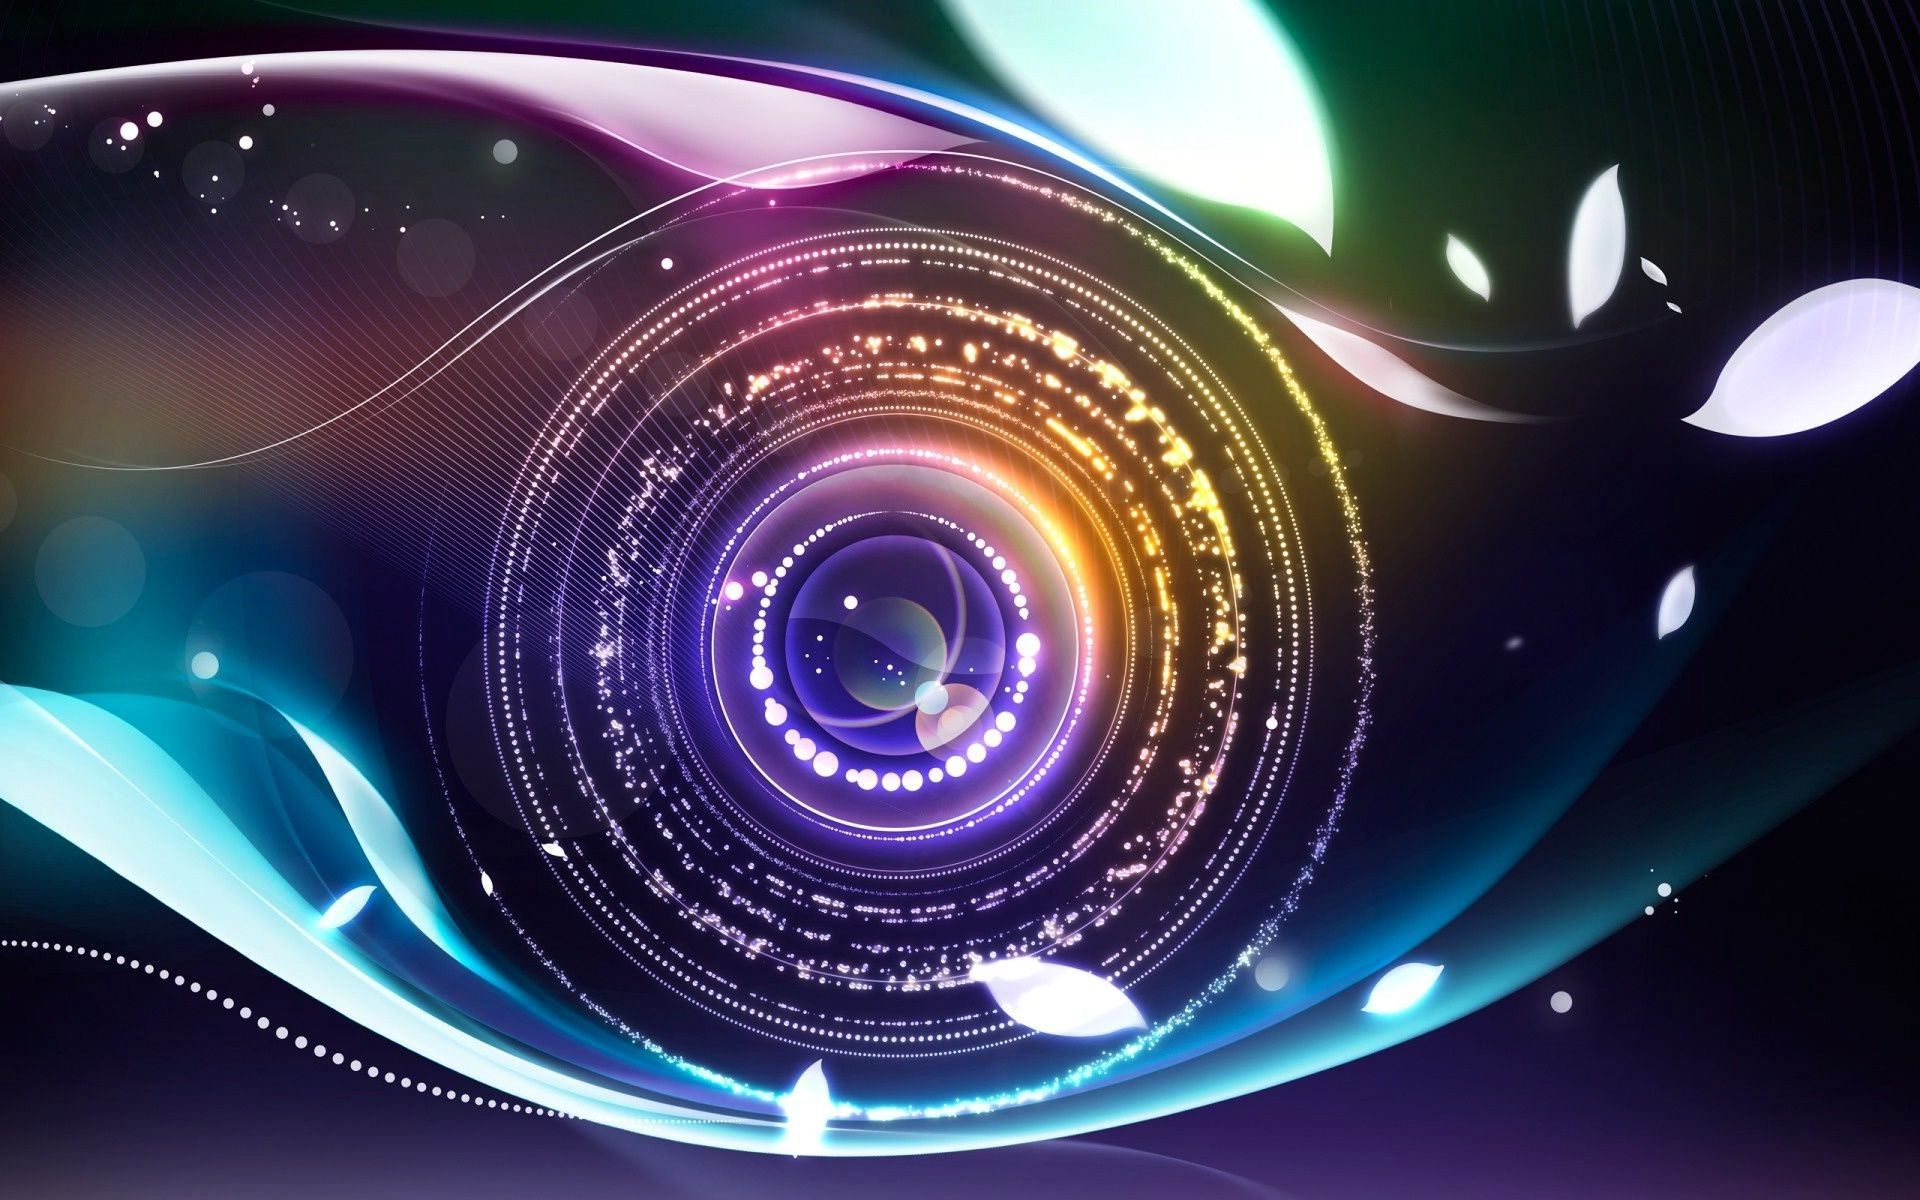 camera wallpaper wallpaper free download 1920×1200 camera wallpaper